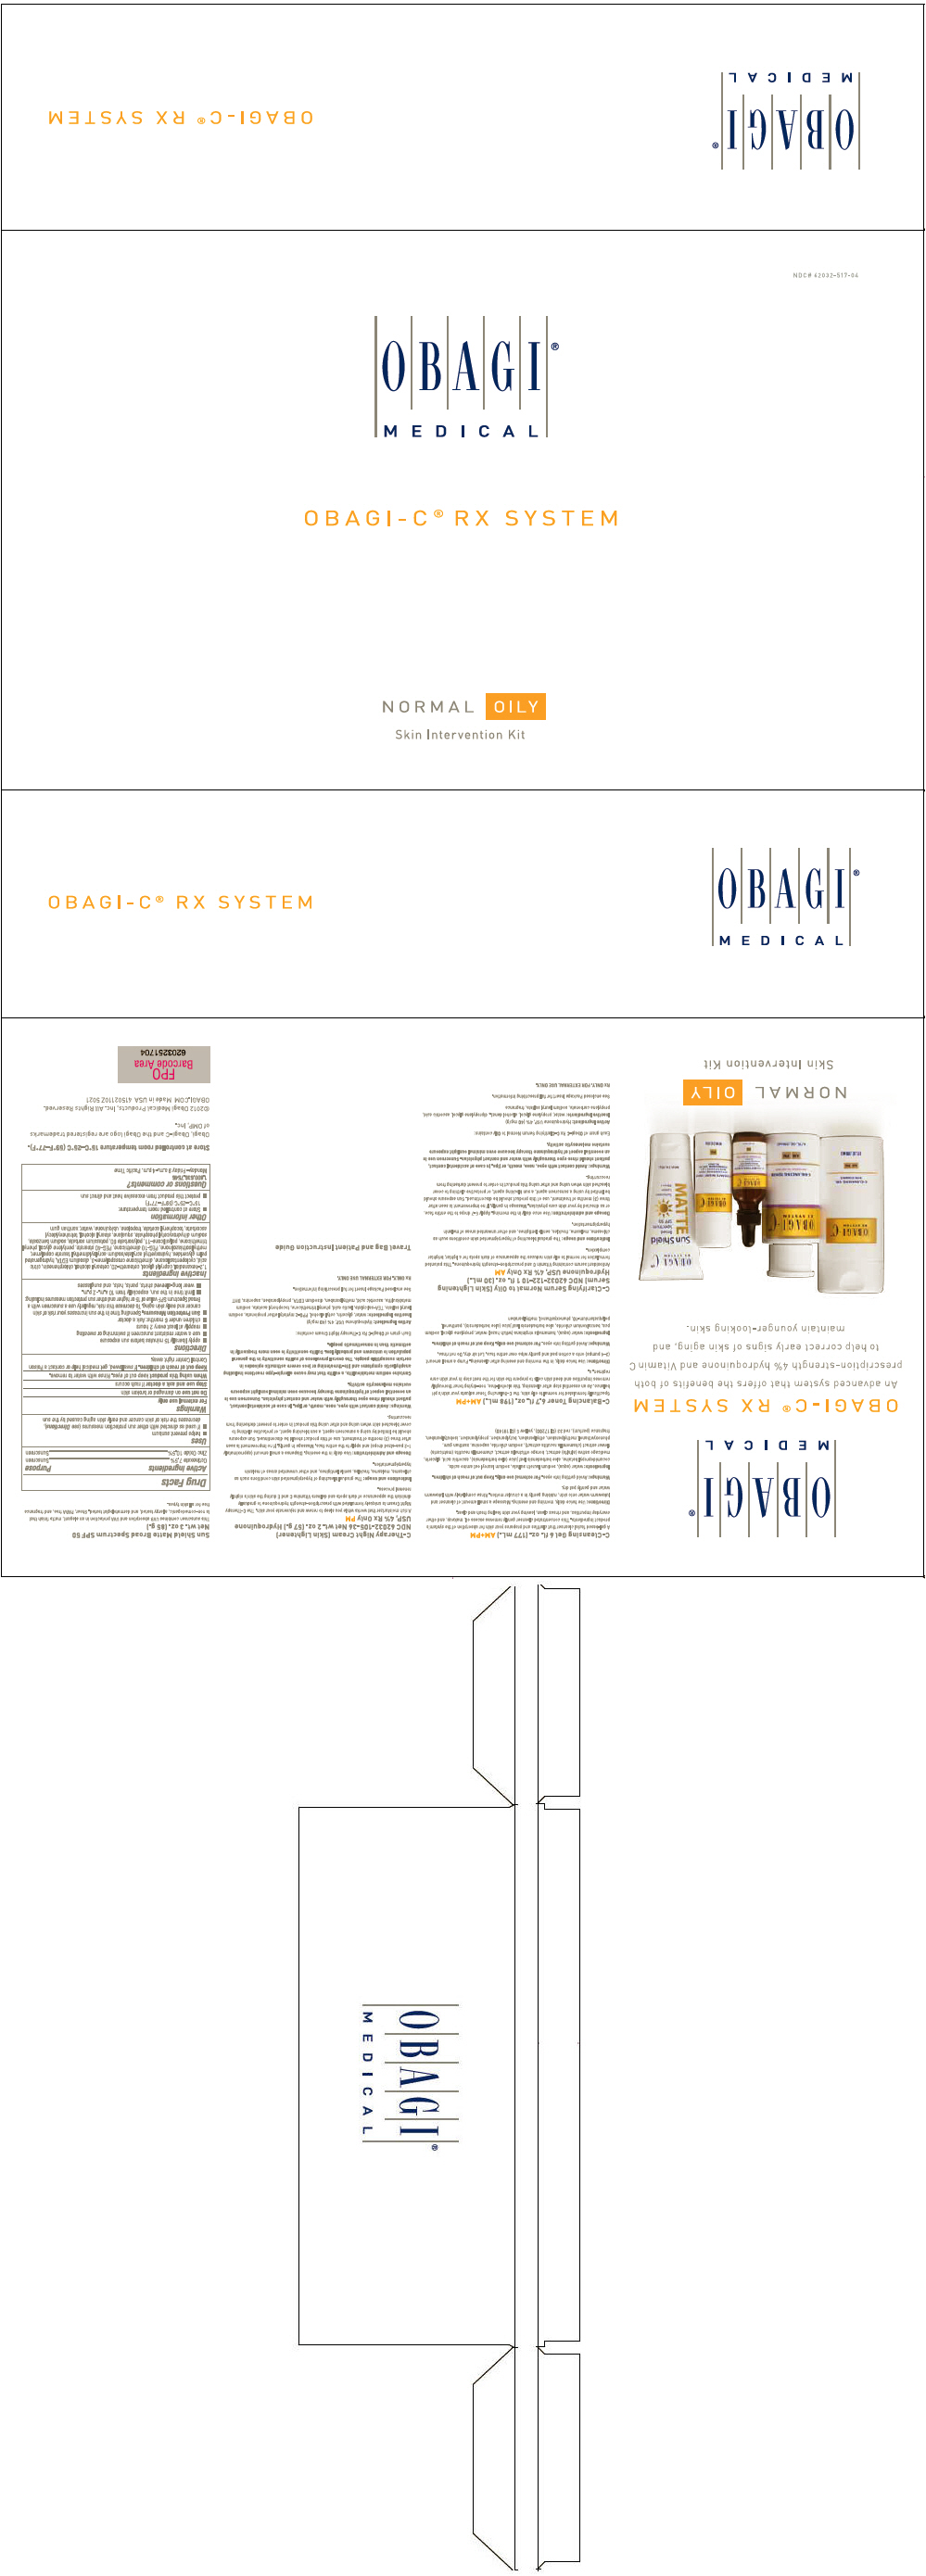 Obagi-c Rx System Normal-oily Skin Intervention (Hydroquinone, Octinoxate And Zinc Oxide) Kit [Omp, Inc.]